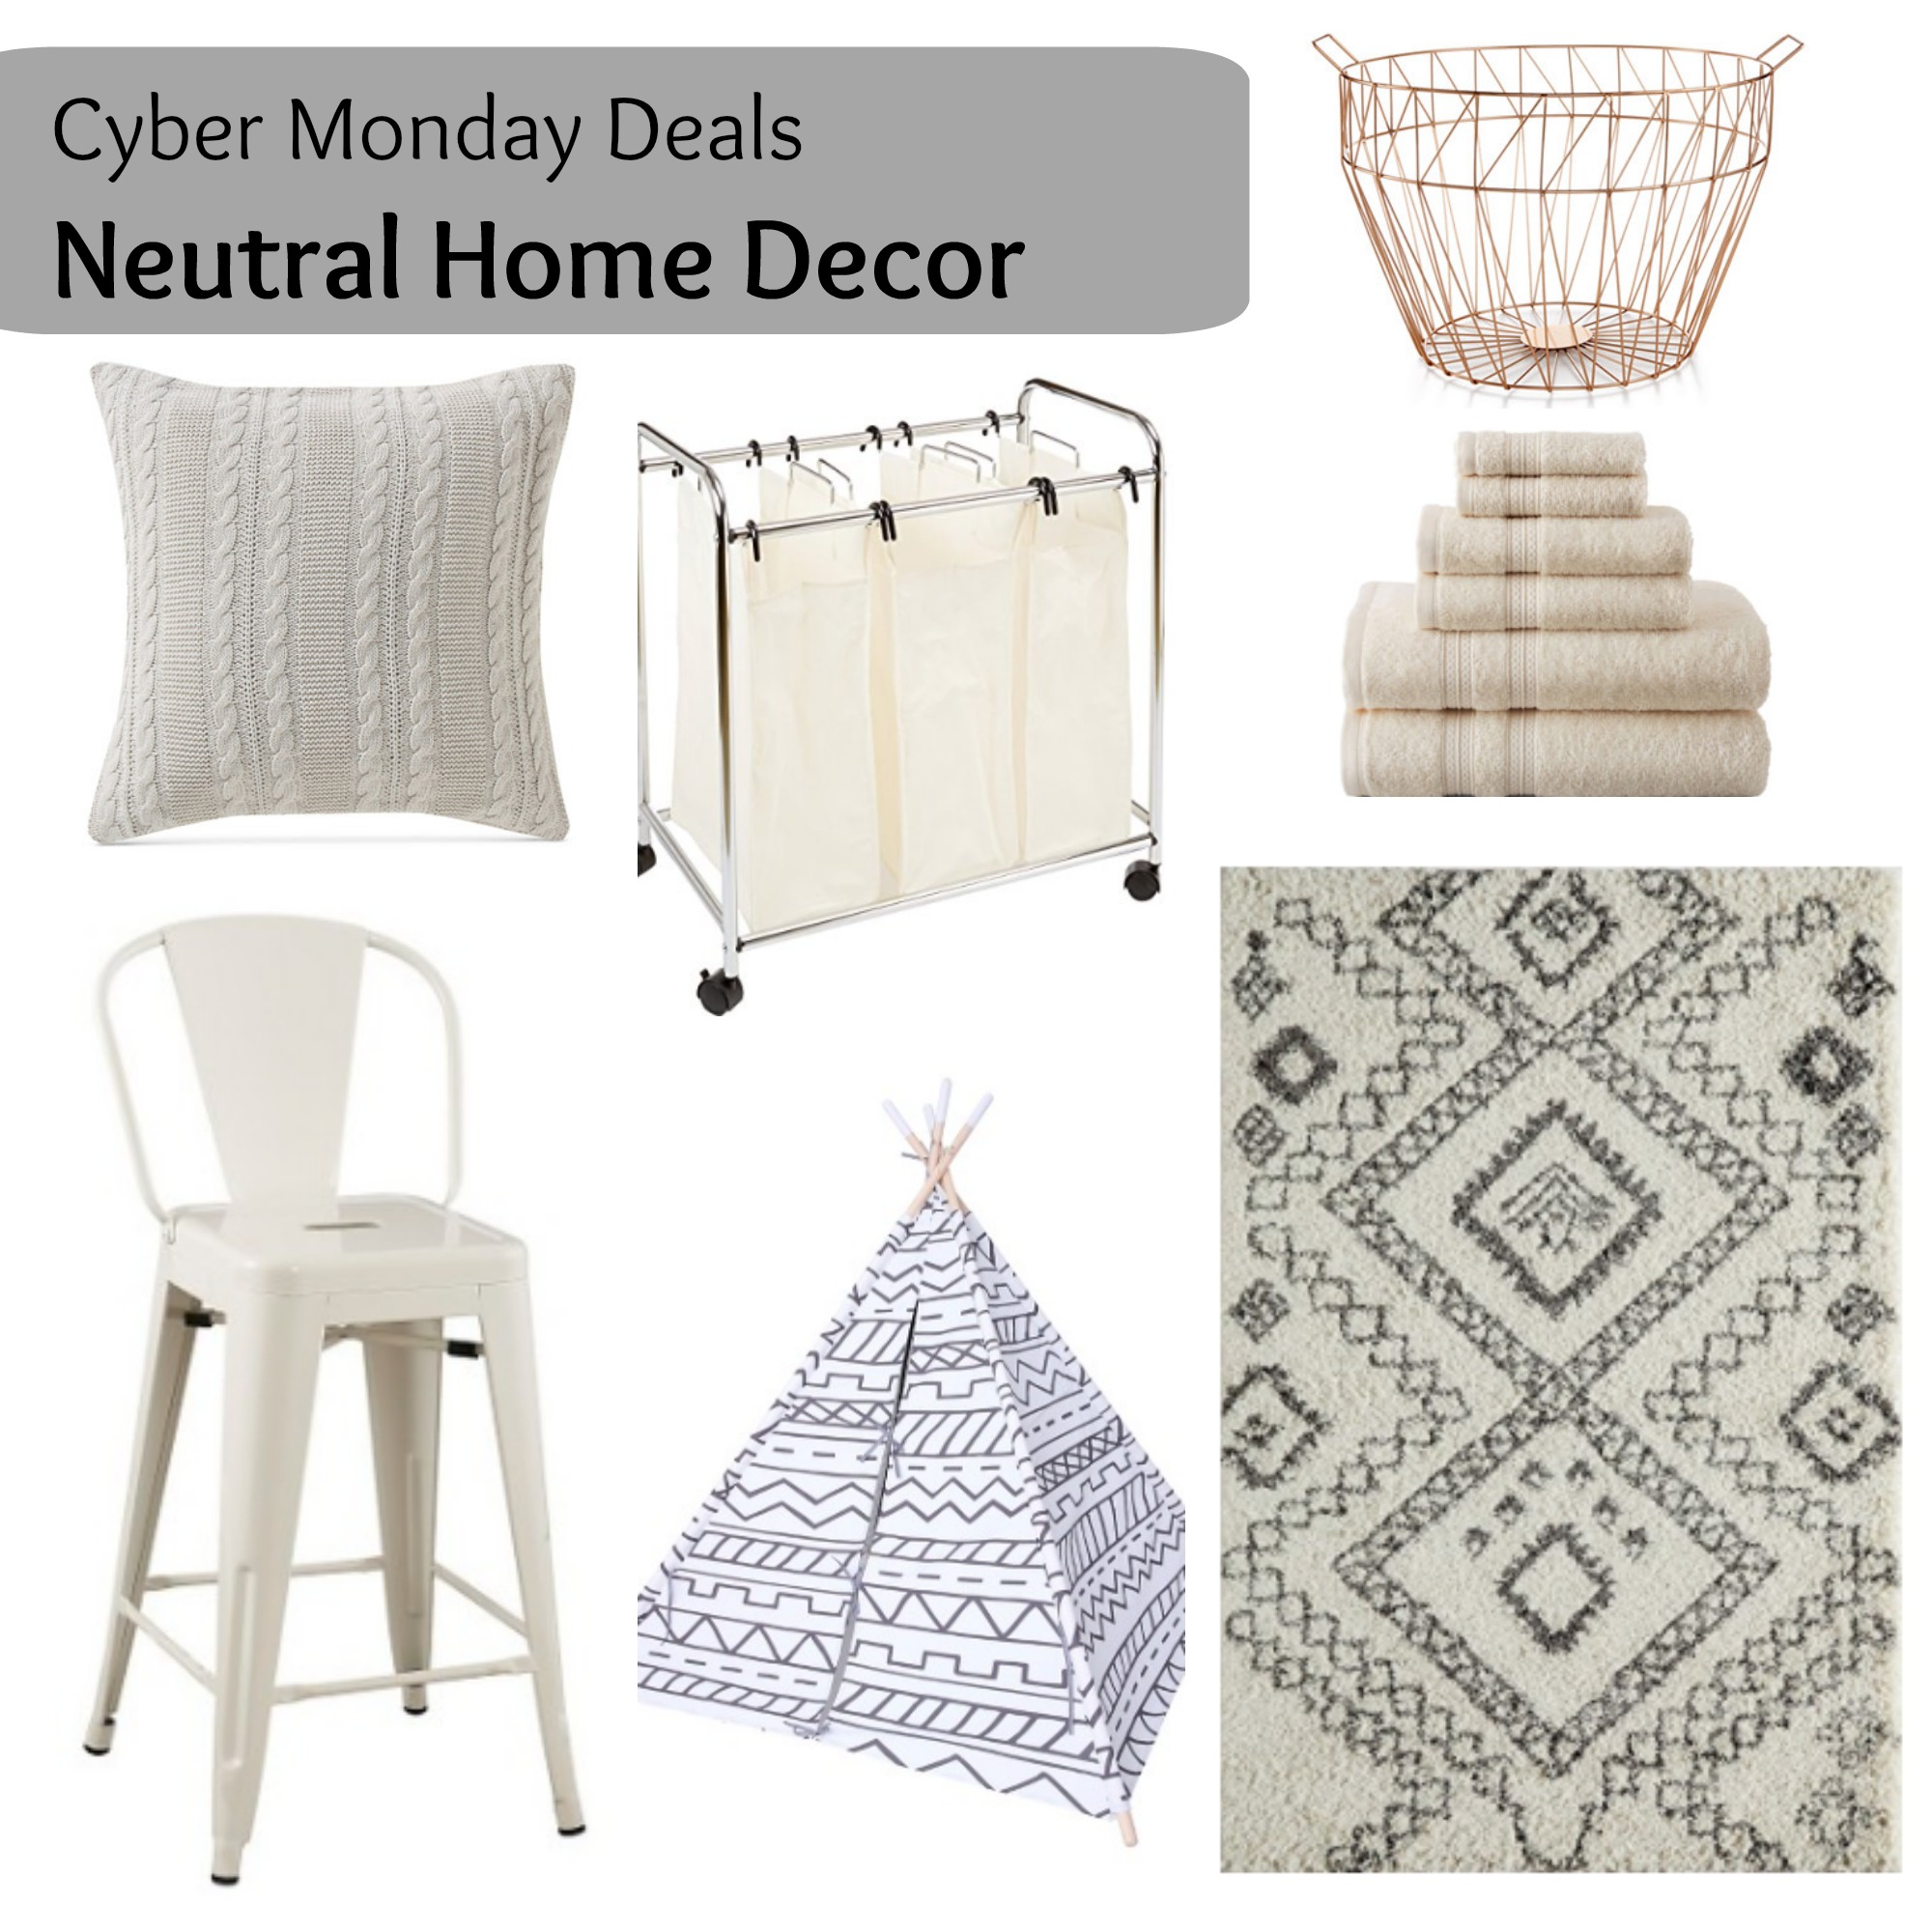 Cyber Monday Neutral Home Decor Via Life On Shady Lane Blog